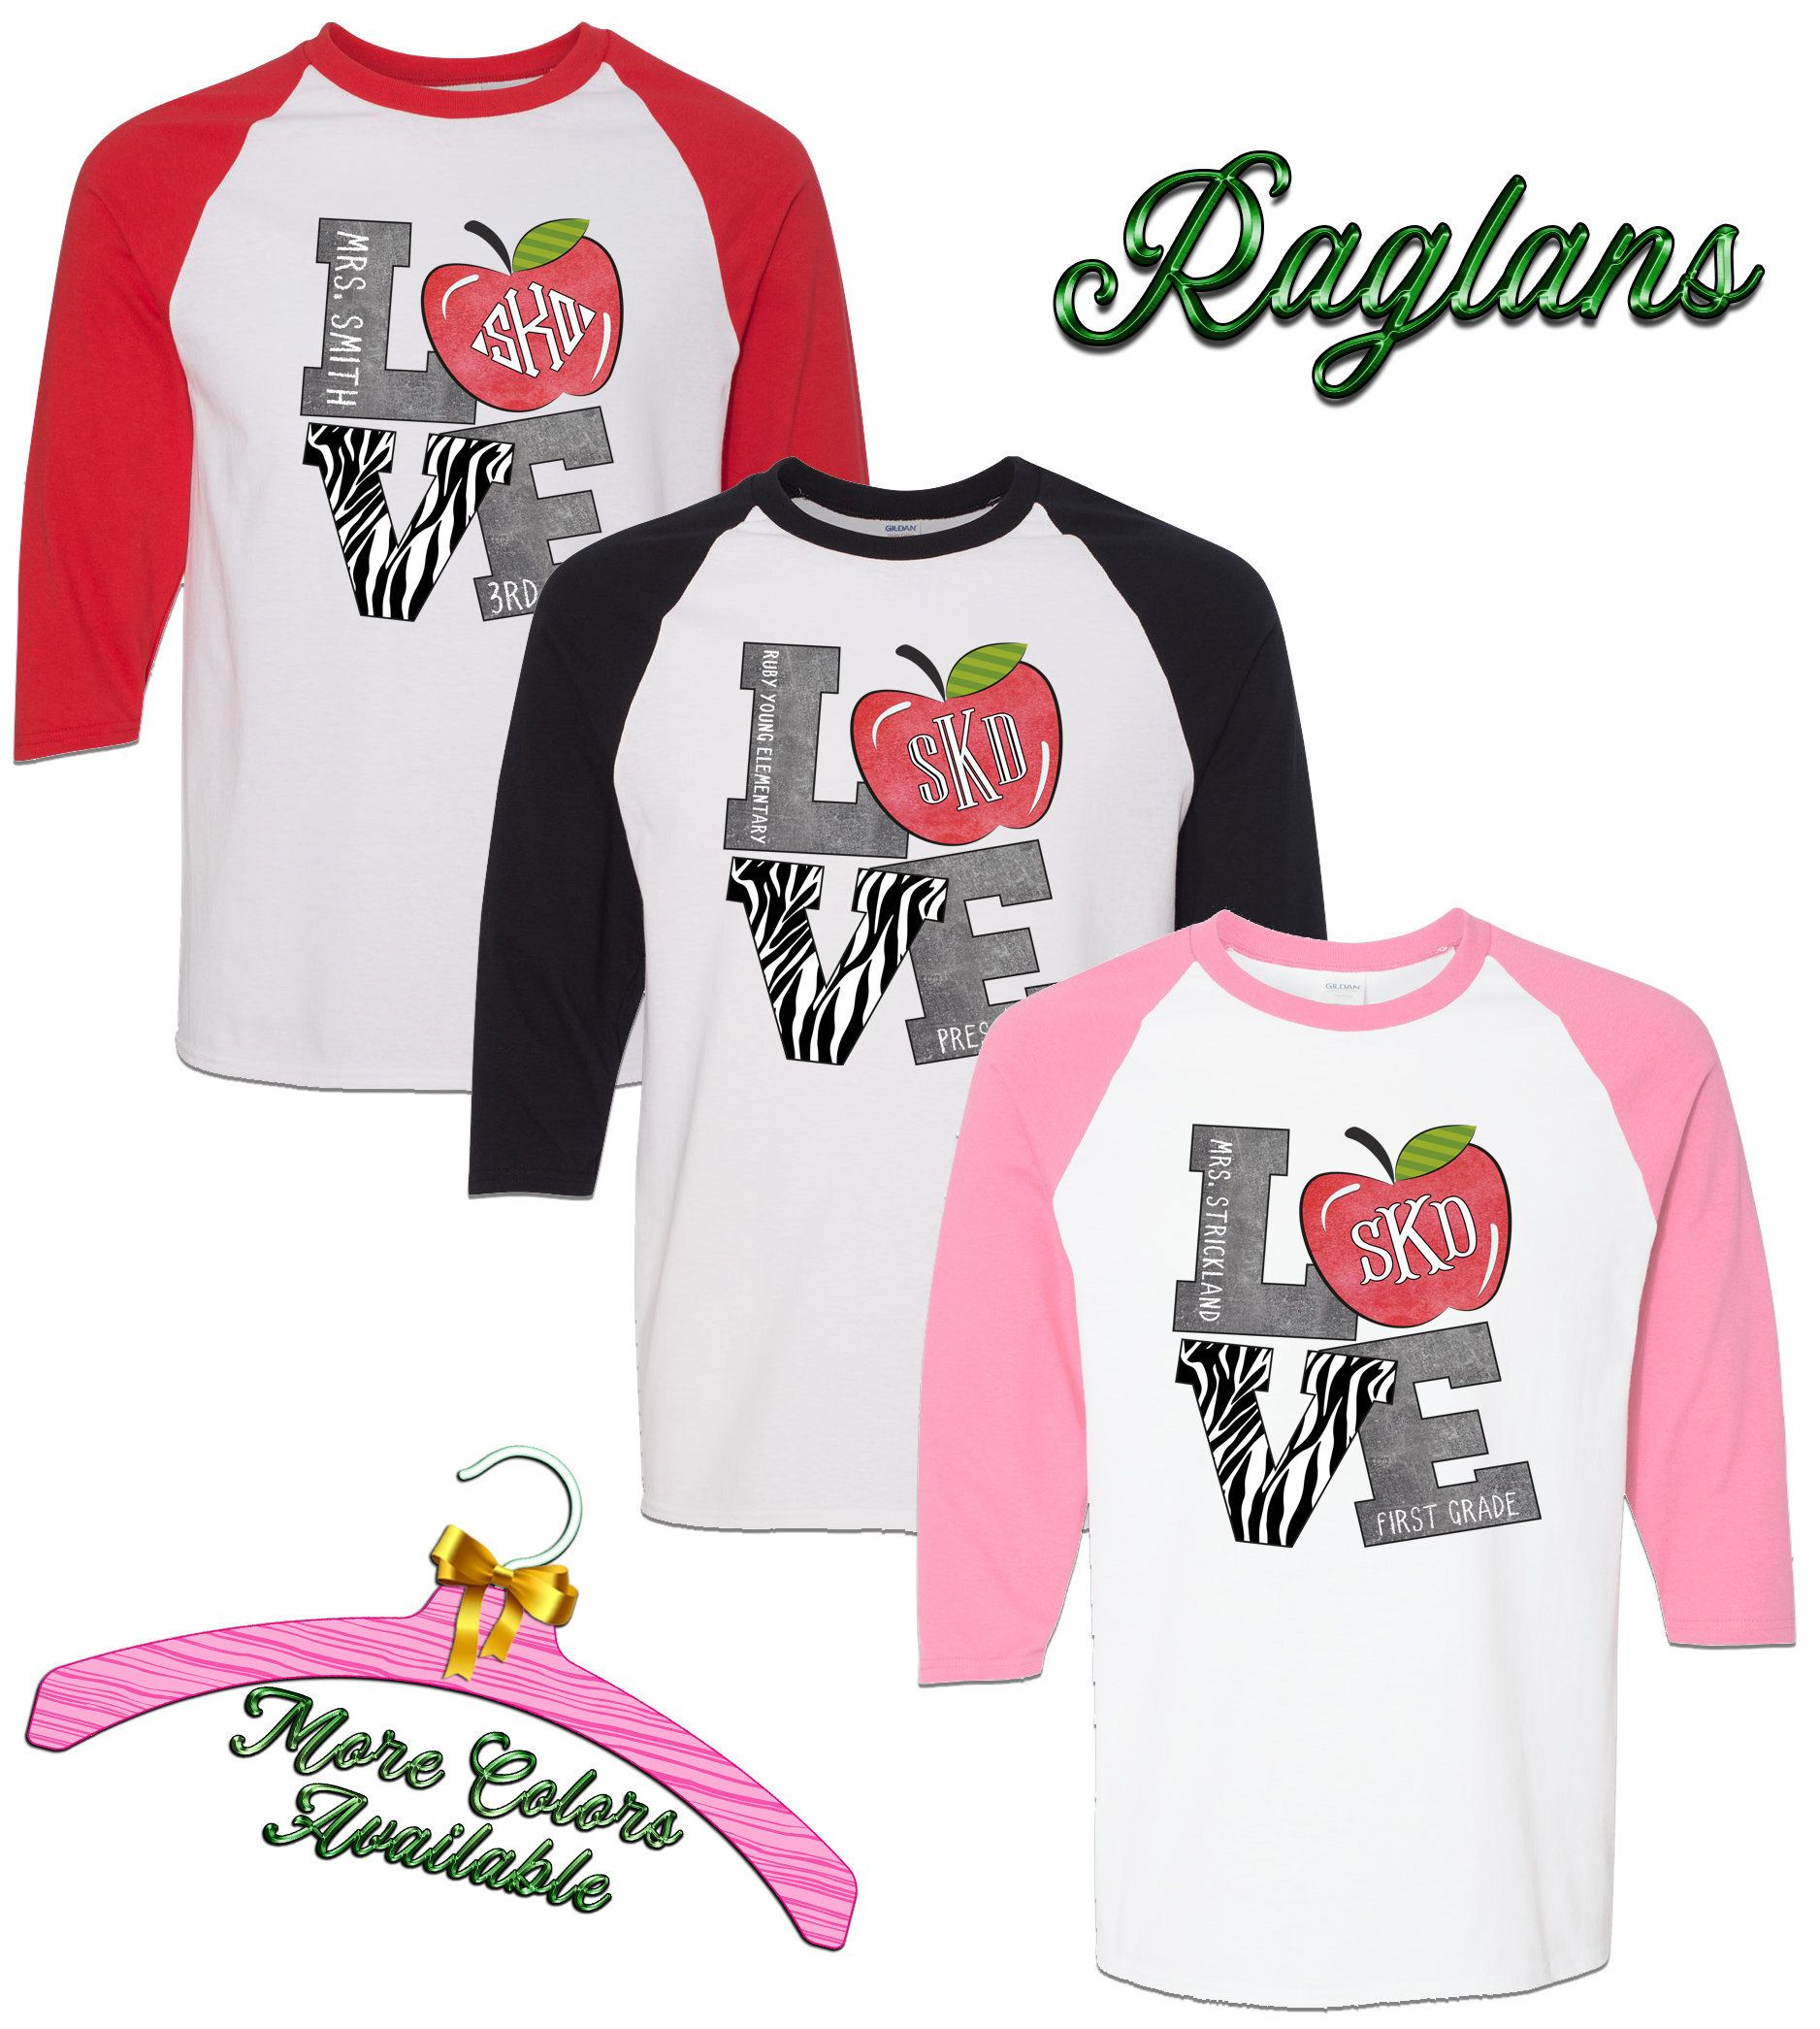 Custom Zebra Love Monogram Raglan Shirt, Cute Back To School Shirt, First Day of School Shirt Teacher Team Shirts 100 Days of School Shirt Customize both the writing in the L and in the E of this super cute tee to say anything! School, Teacher's Name, Grade...use this space however you choose! Then add your monogram in the apple, choose your Raglan tee color and make this tee unique just like you! ✨Also Available in Toddler Sizes (Rabbit Skins), Adult and Youth Bella Canvas and Comfort Colors...